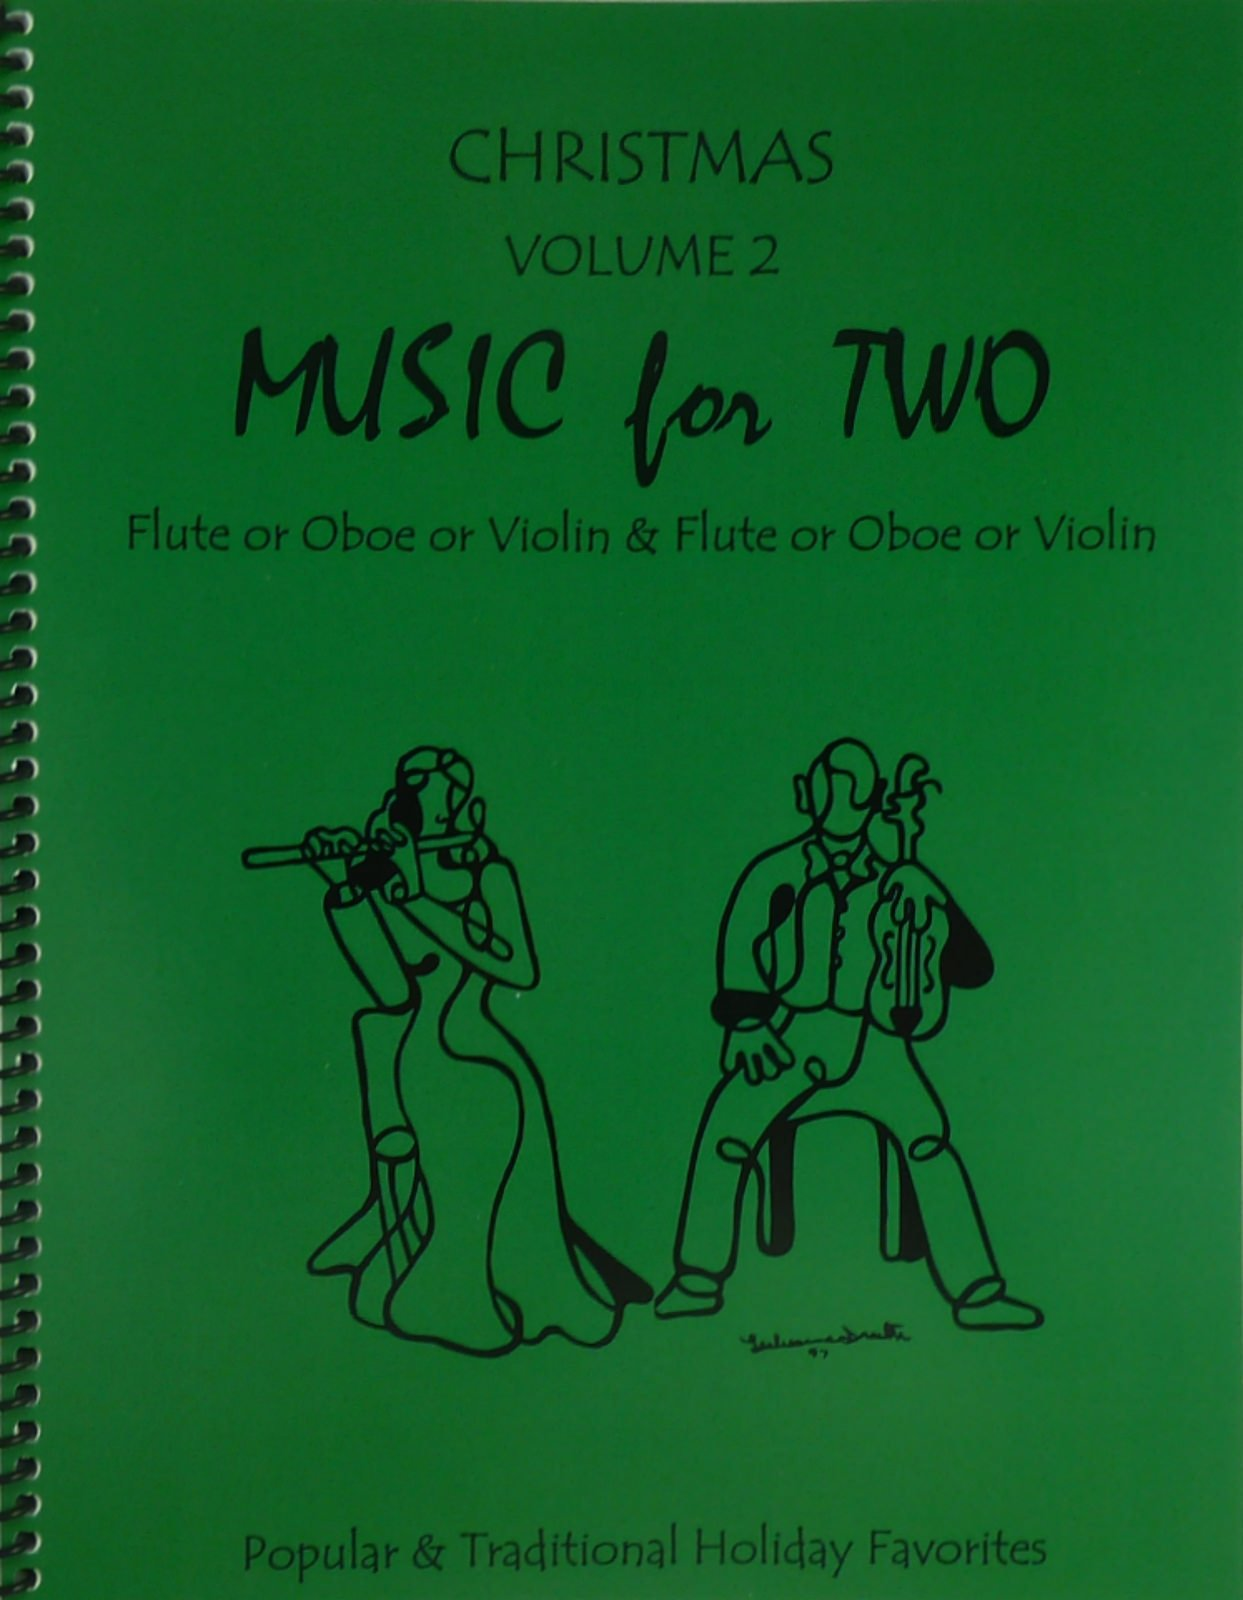 Music for Two, Christmas Volume 2 for Flute or Oboe or Violin & Flute or Oboe or Violin